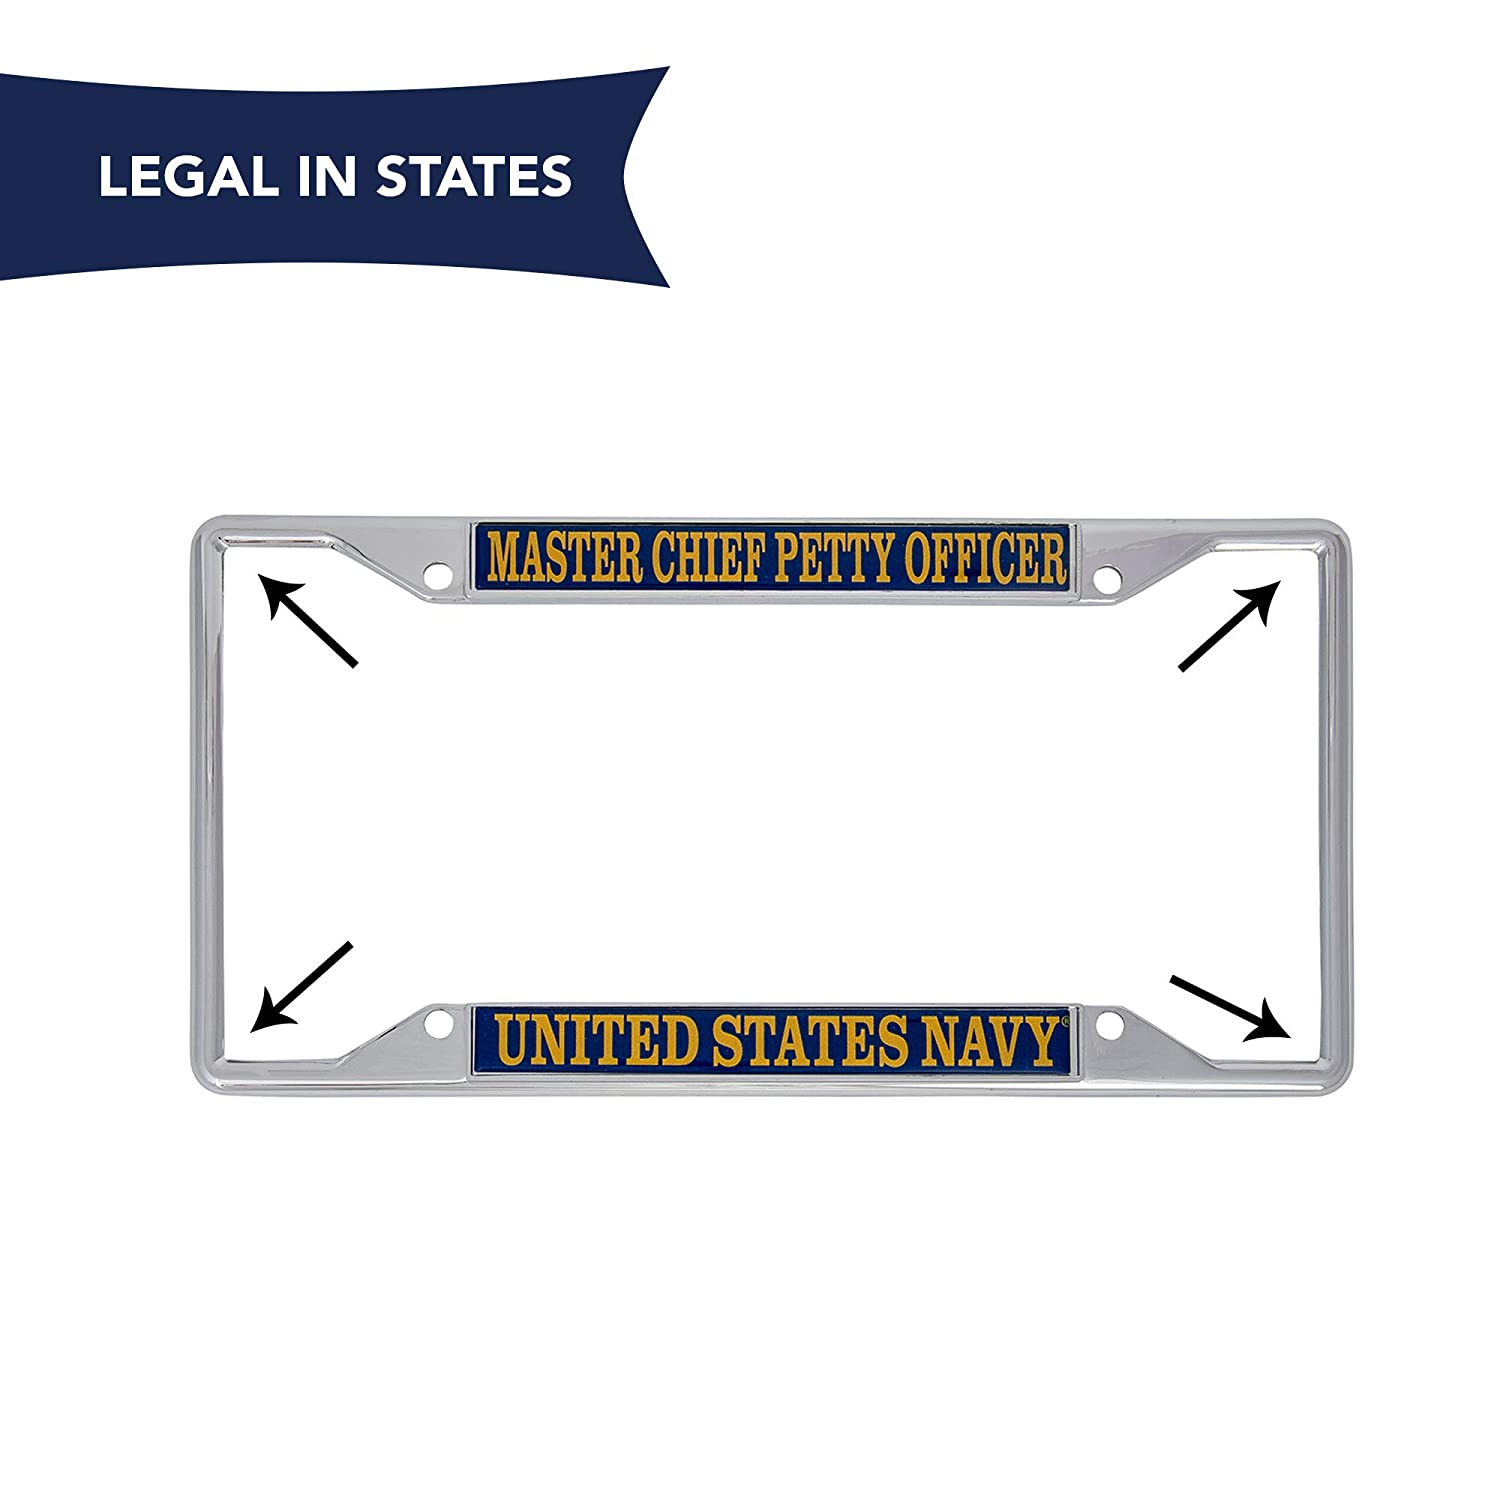 Desert Cactus US Navy Master Chief Petty Officer Enlisted Grades License Plate Frame for Front Back of Car Officially Licensed United States